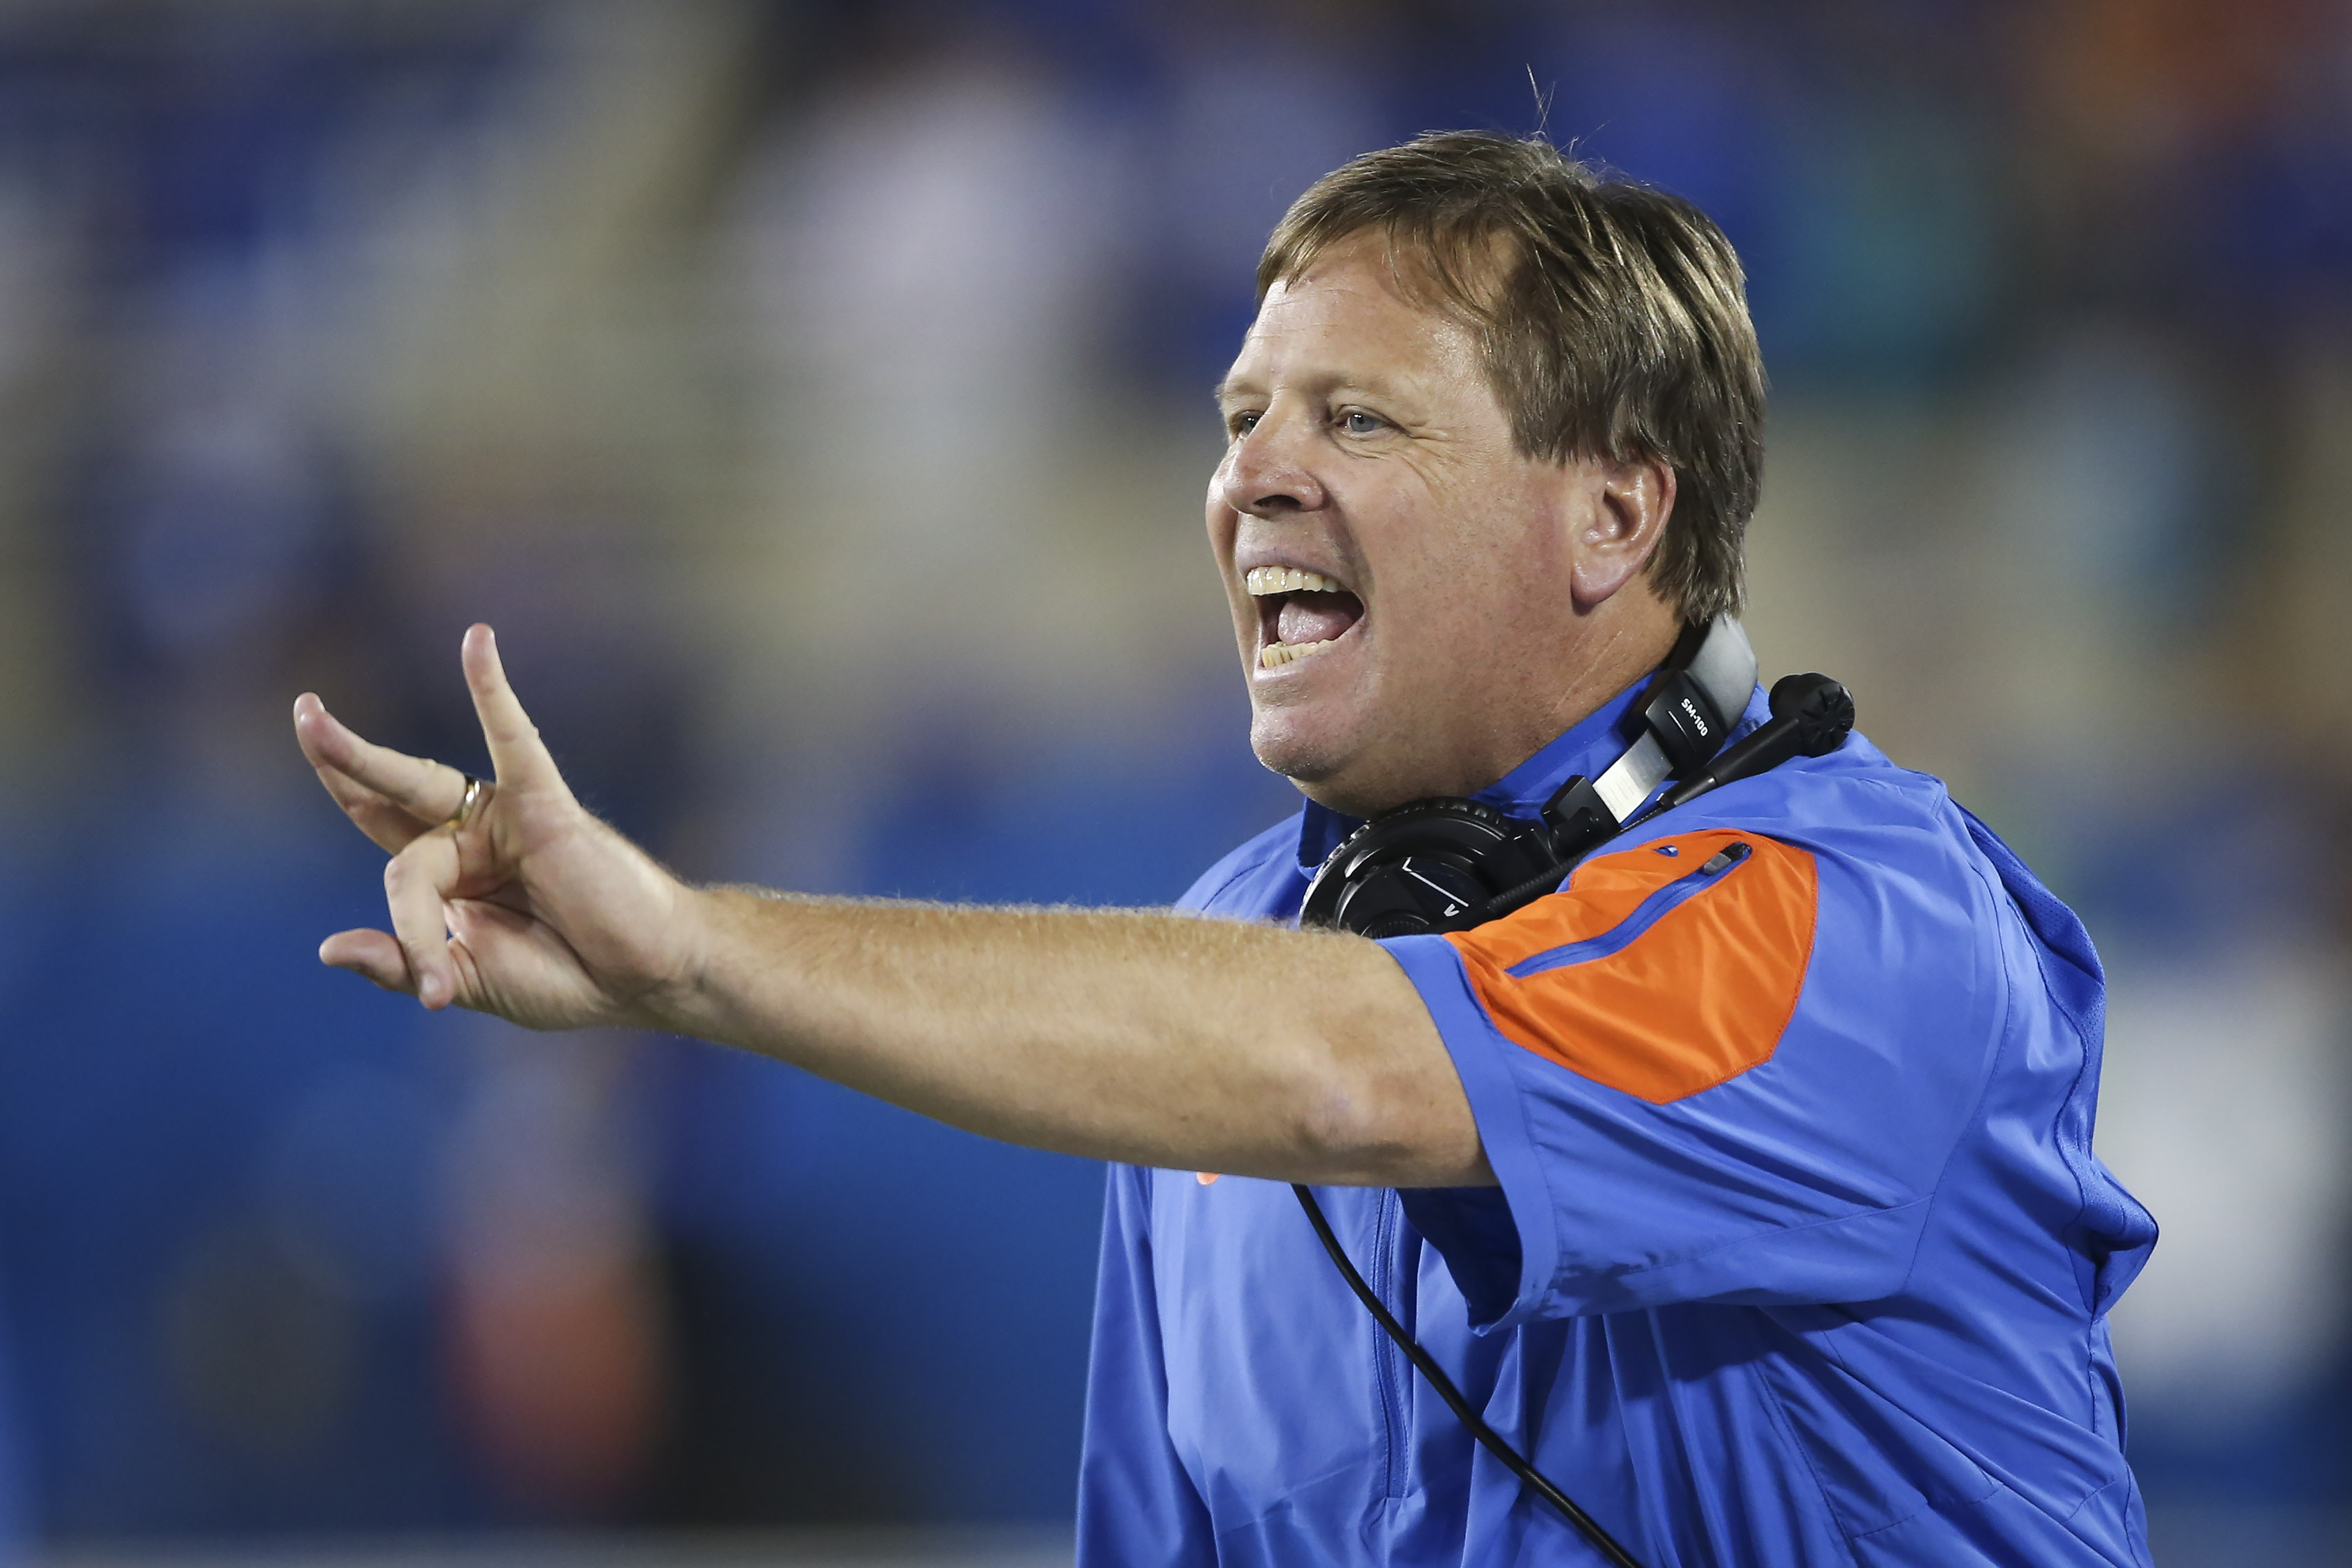 Florida head coach Jim McElwain instructs his team during the second half of an NCAA college football game against Kentucky, Saturday, Sept. 19, 2015, in Lexington, Ky. Florida won the game 14-9. (AP Photo/David Stephenson)